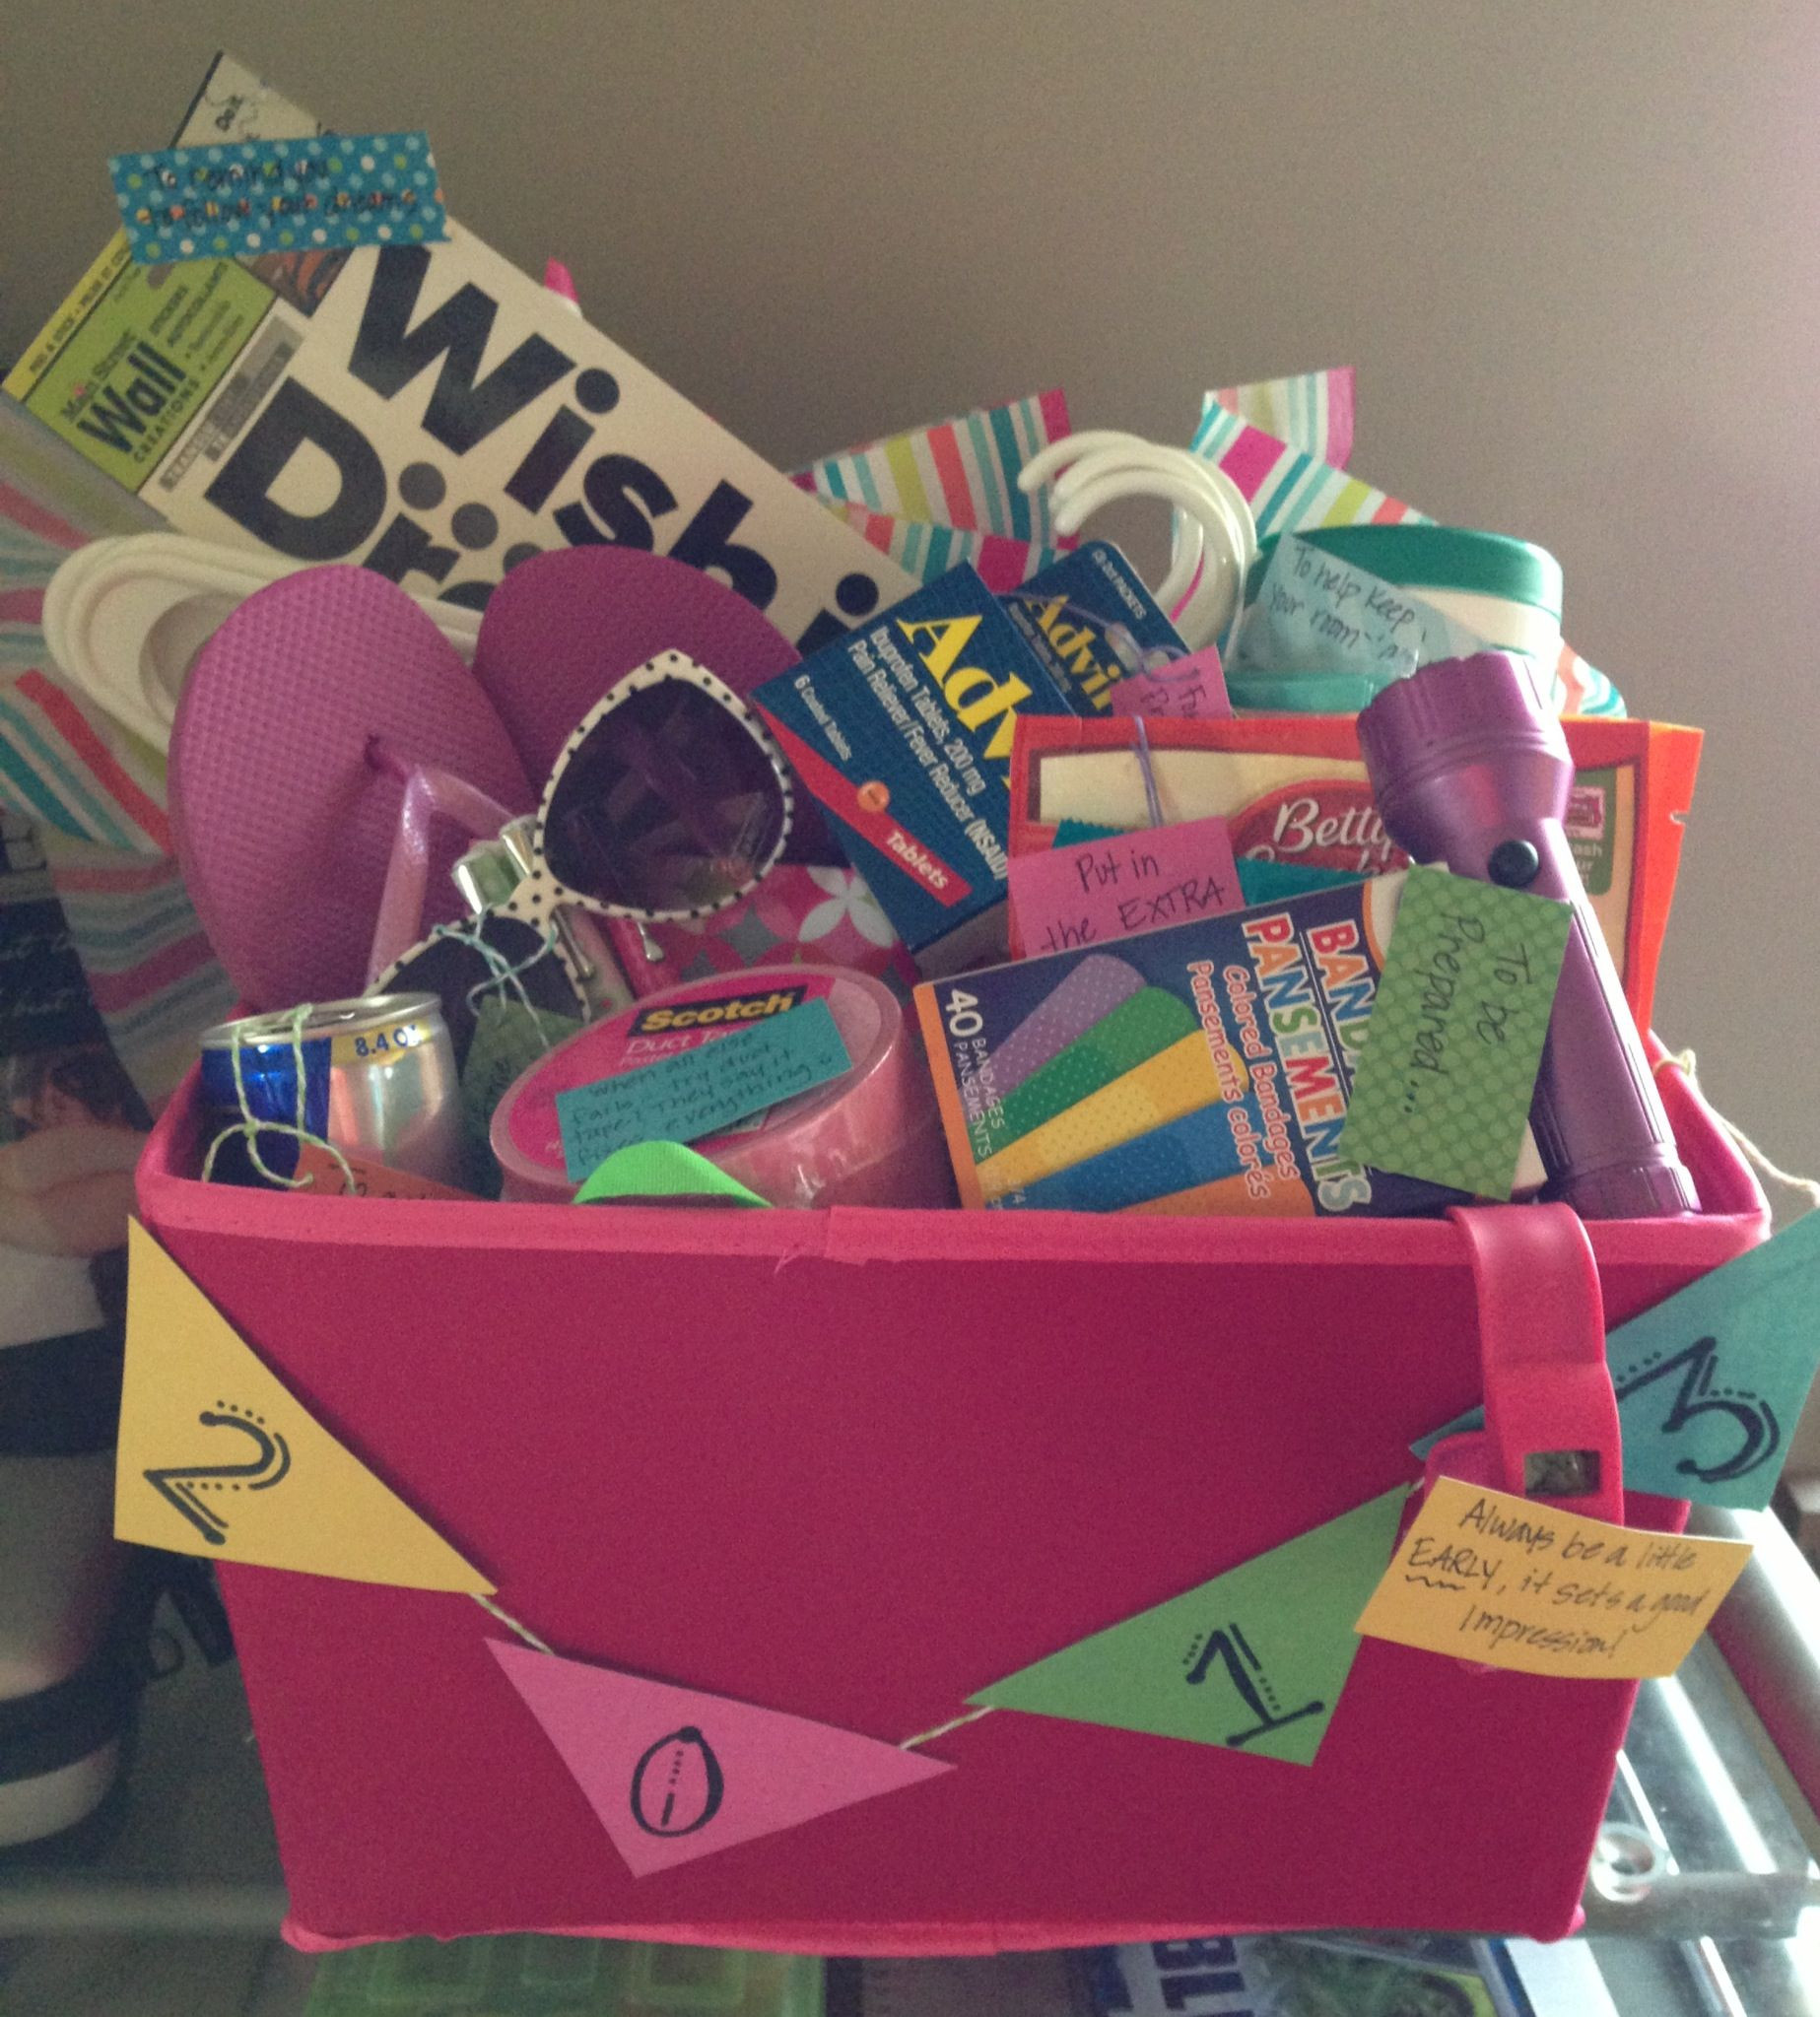 Senior Graduation Gift Ideas  Graduation t basket college survival and tips basket